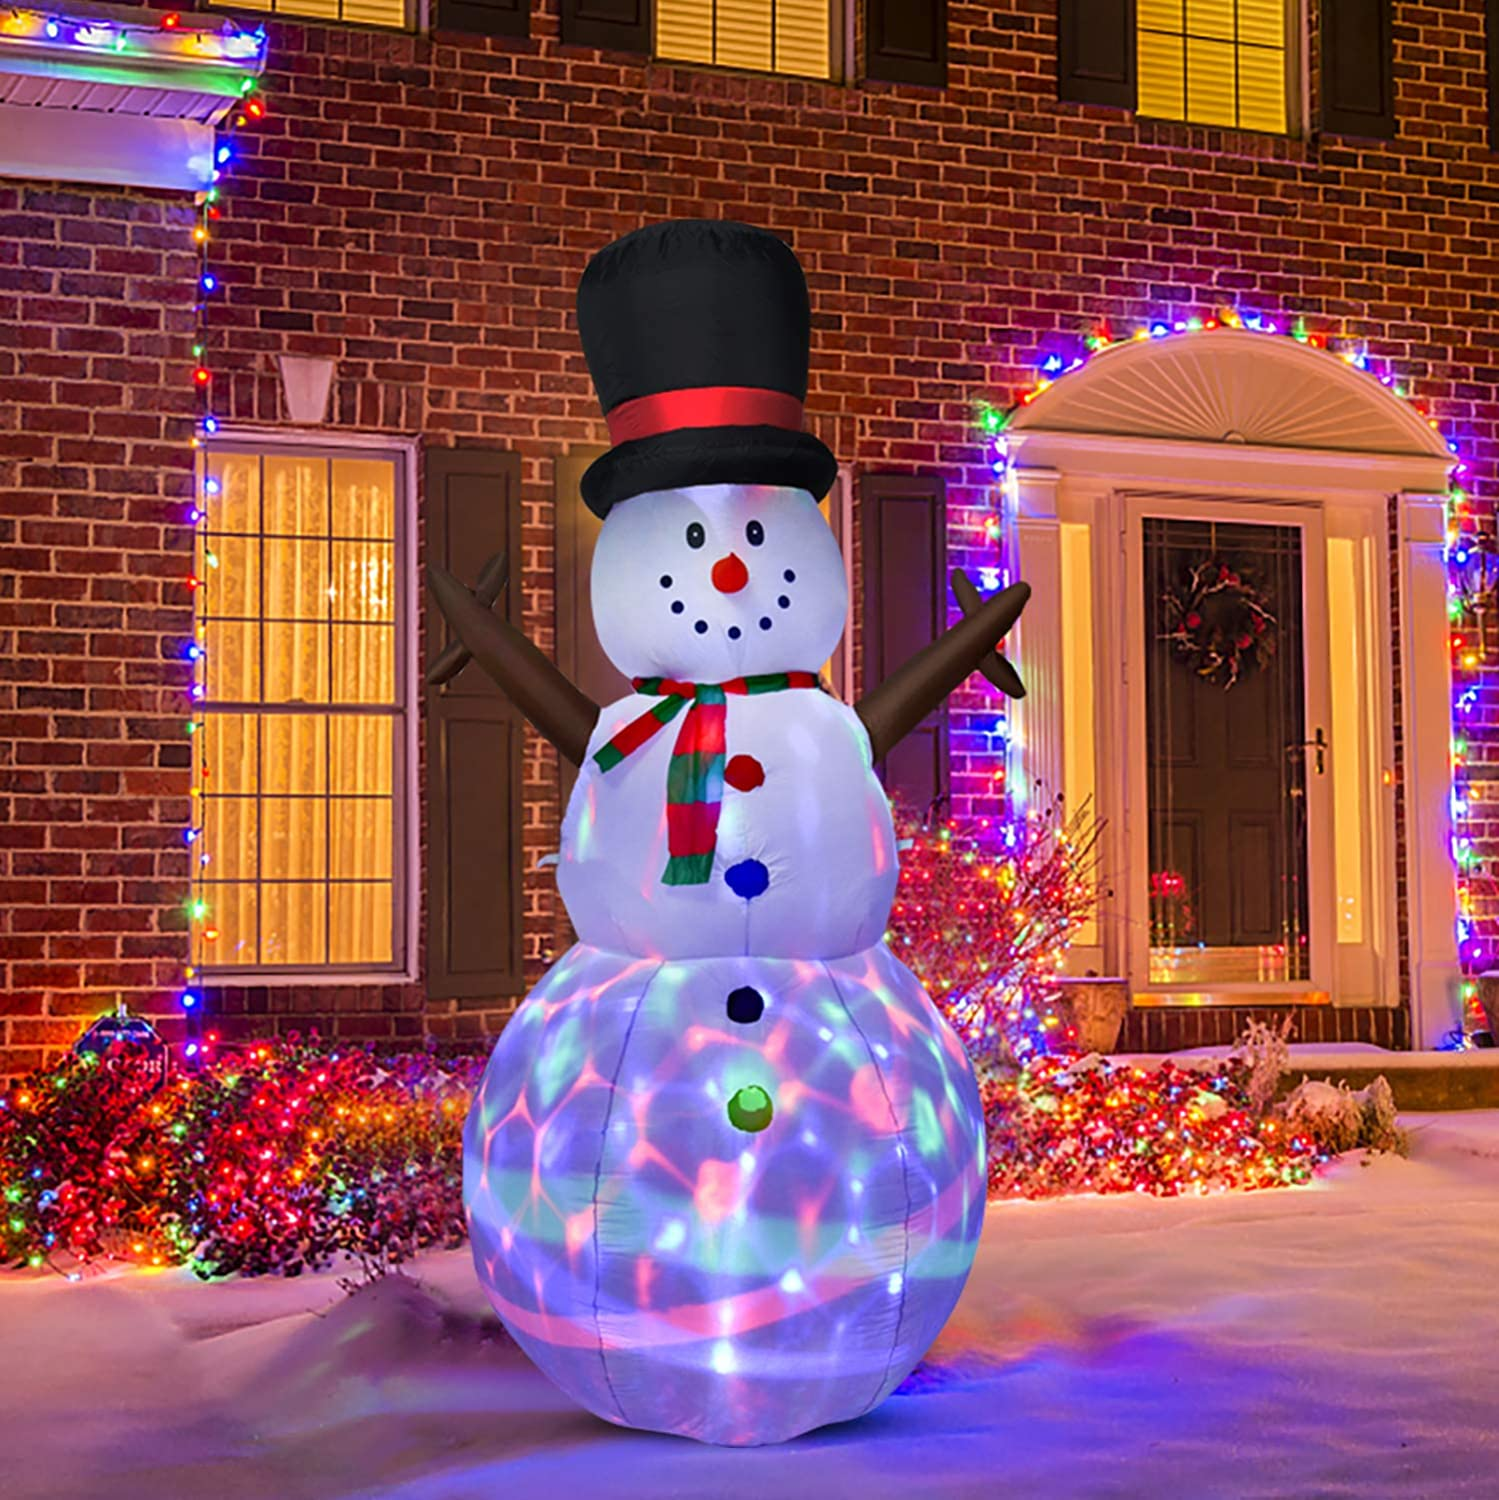 DearHouse 8 FT Inflatable Christmas Snowman, Rotating Led Lights Xmas Holiday Blow Up Family Party Decoration Yard Lawn Favors Indoor Outdoor Inflatables